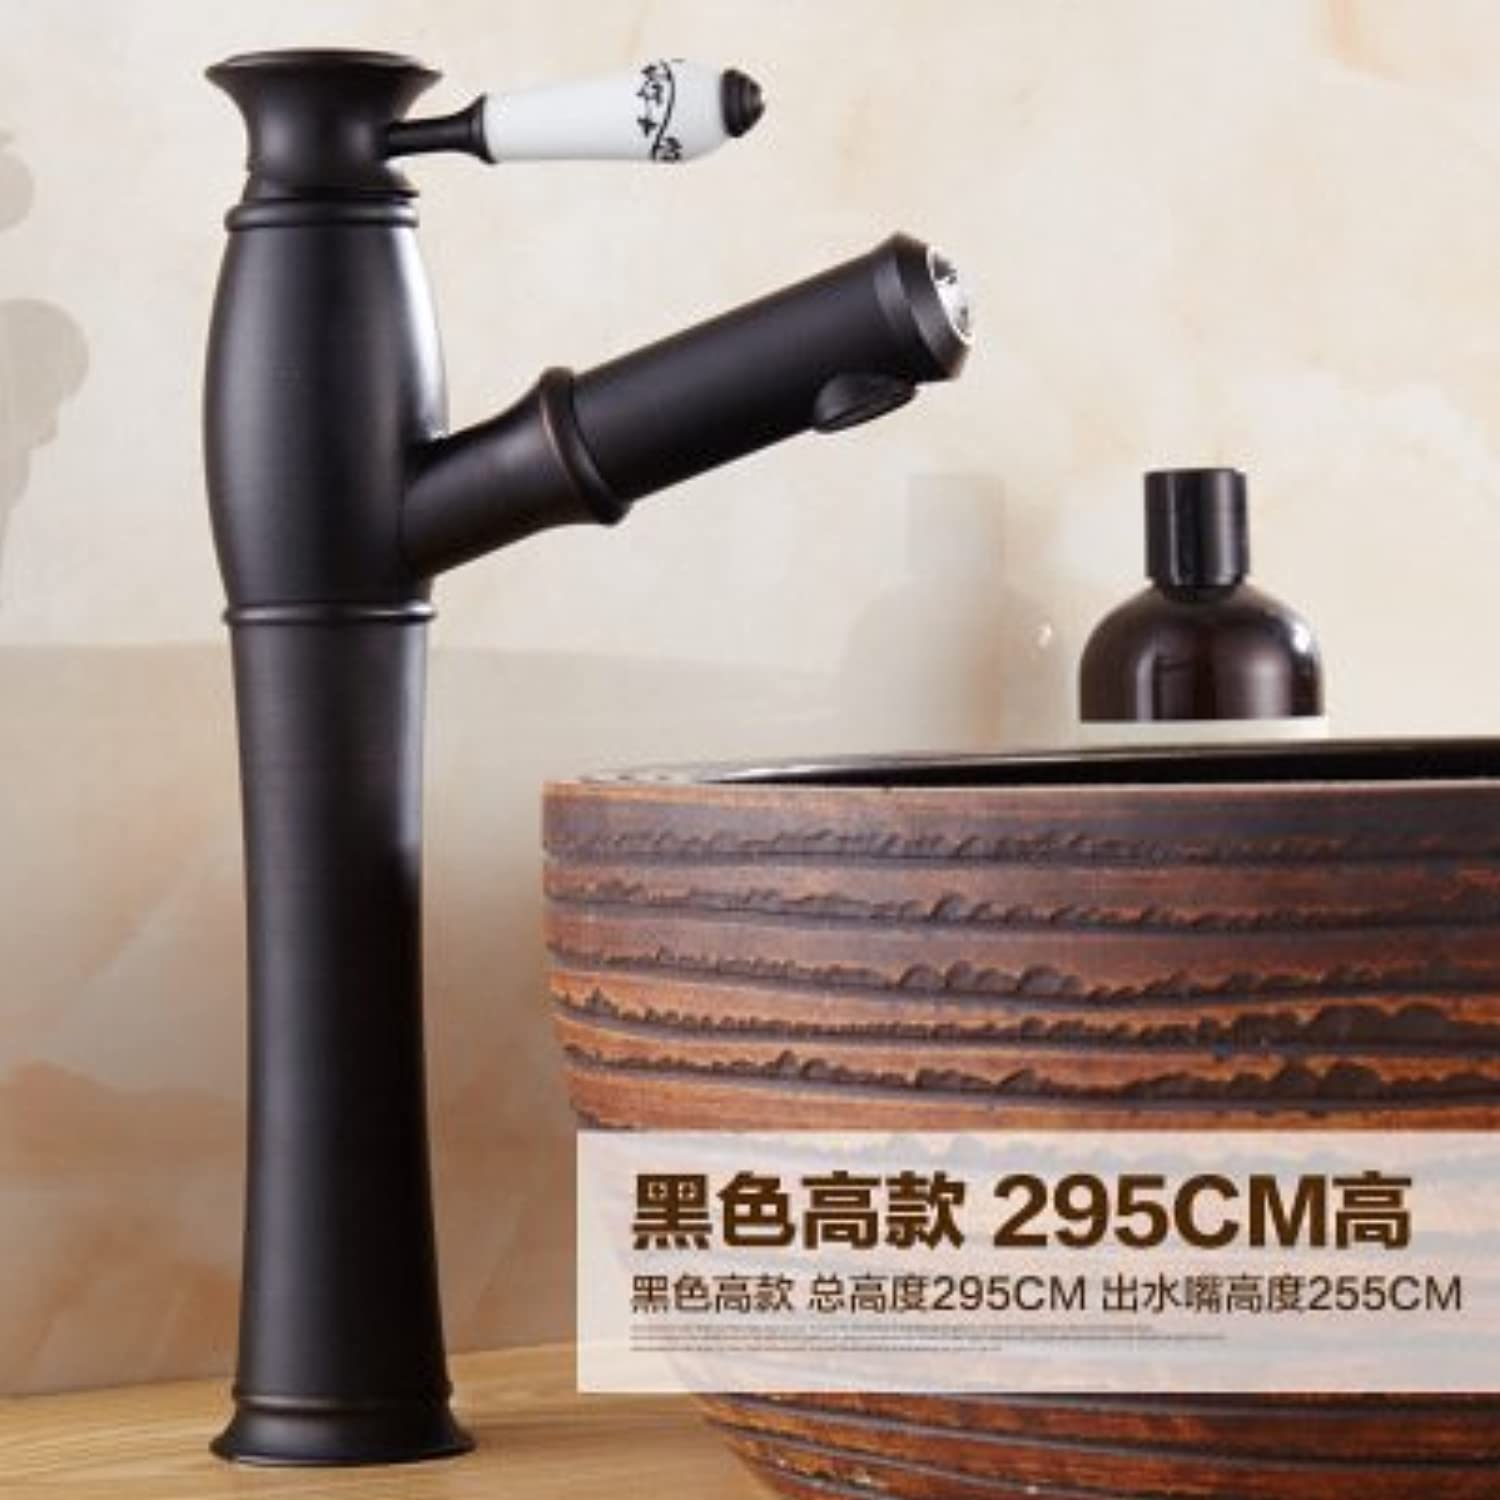 Hlluya Professional Sink Mixer Tap Kitchen Faucet Antique pull-down faucet bronze basin-wide scale redation,H